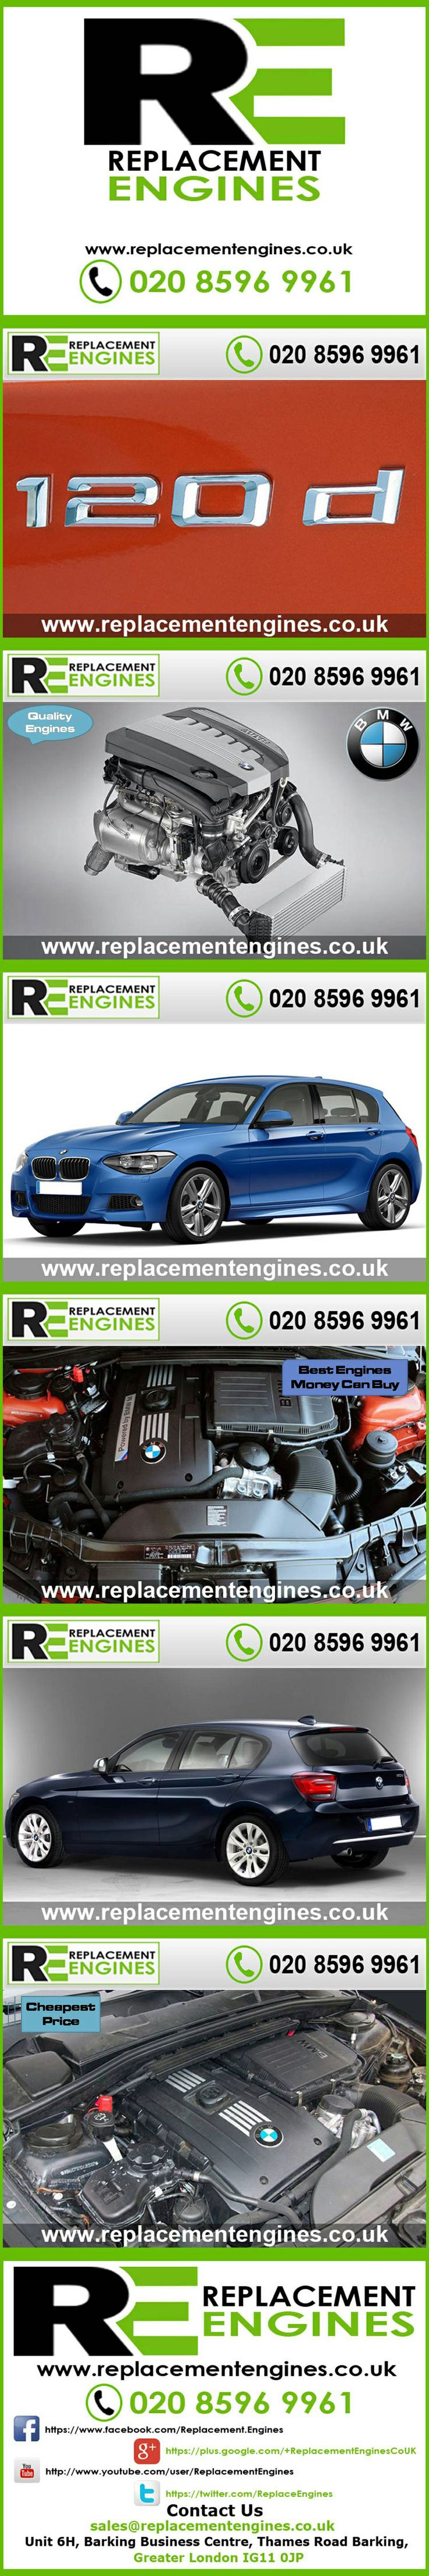 BMW 120d engines for sale at the cheapest prices, we have low mileage used & reconditioned engines in stock now, ready to be delivered to anywhere in the UK or overseas, visit Replacement Engines website here.